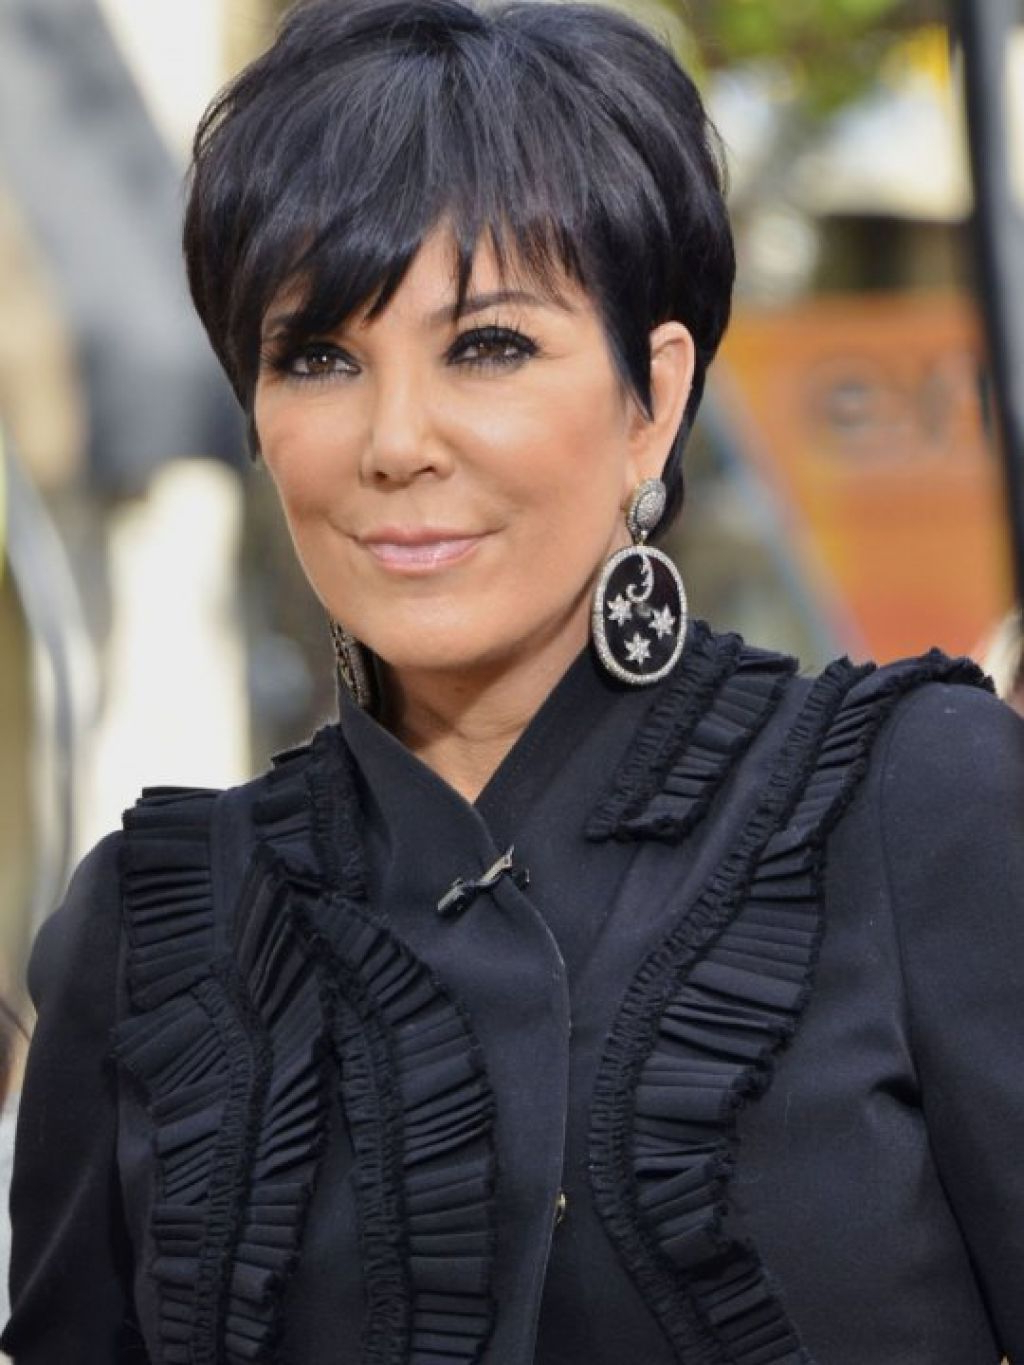 Hairstyles Kris Jenner Simple Short Hair Style , This Style Is Using With Regard To Latest Kris Jenner Medium Haircuts (View 10 of 20)